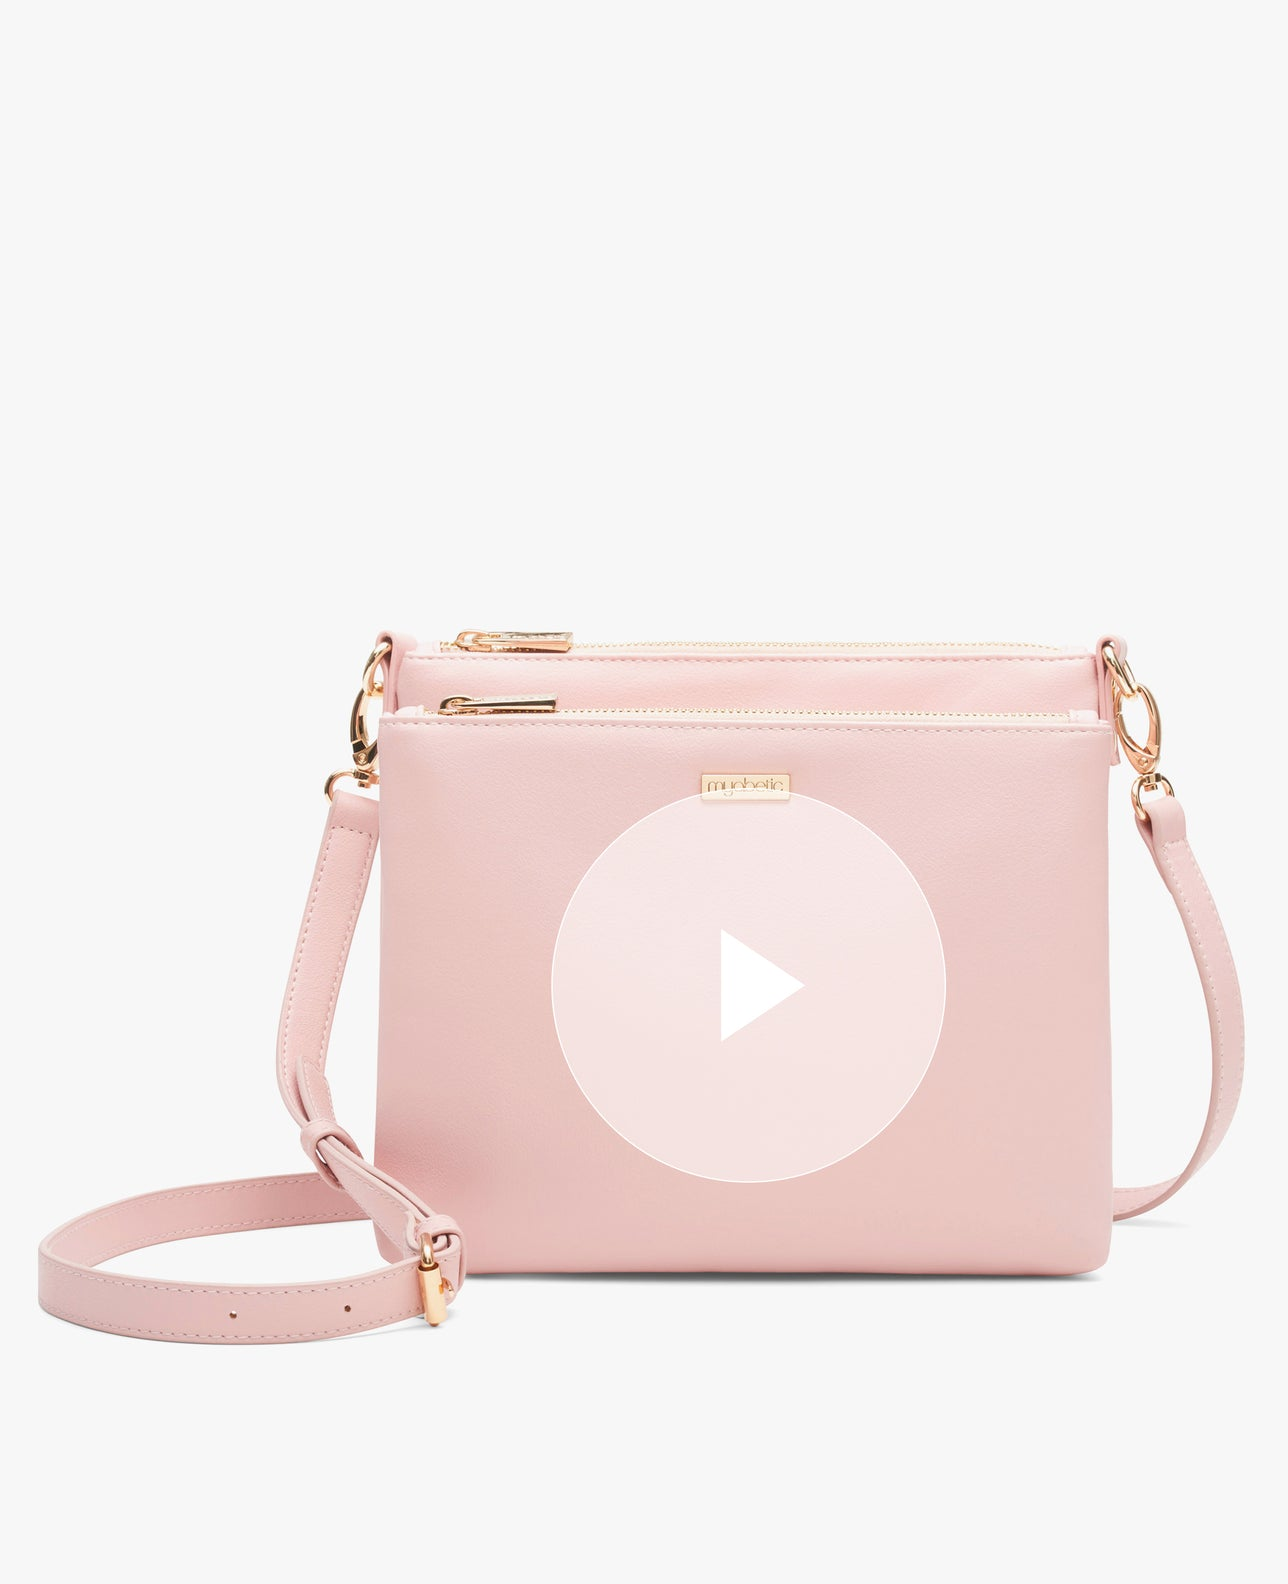 color:blush  https://youtube.com/embed/IPTyNLF0Mus